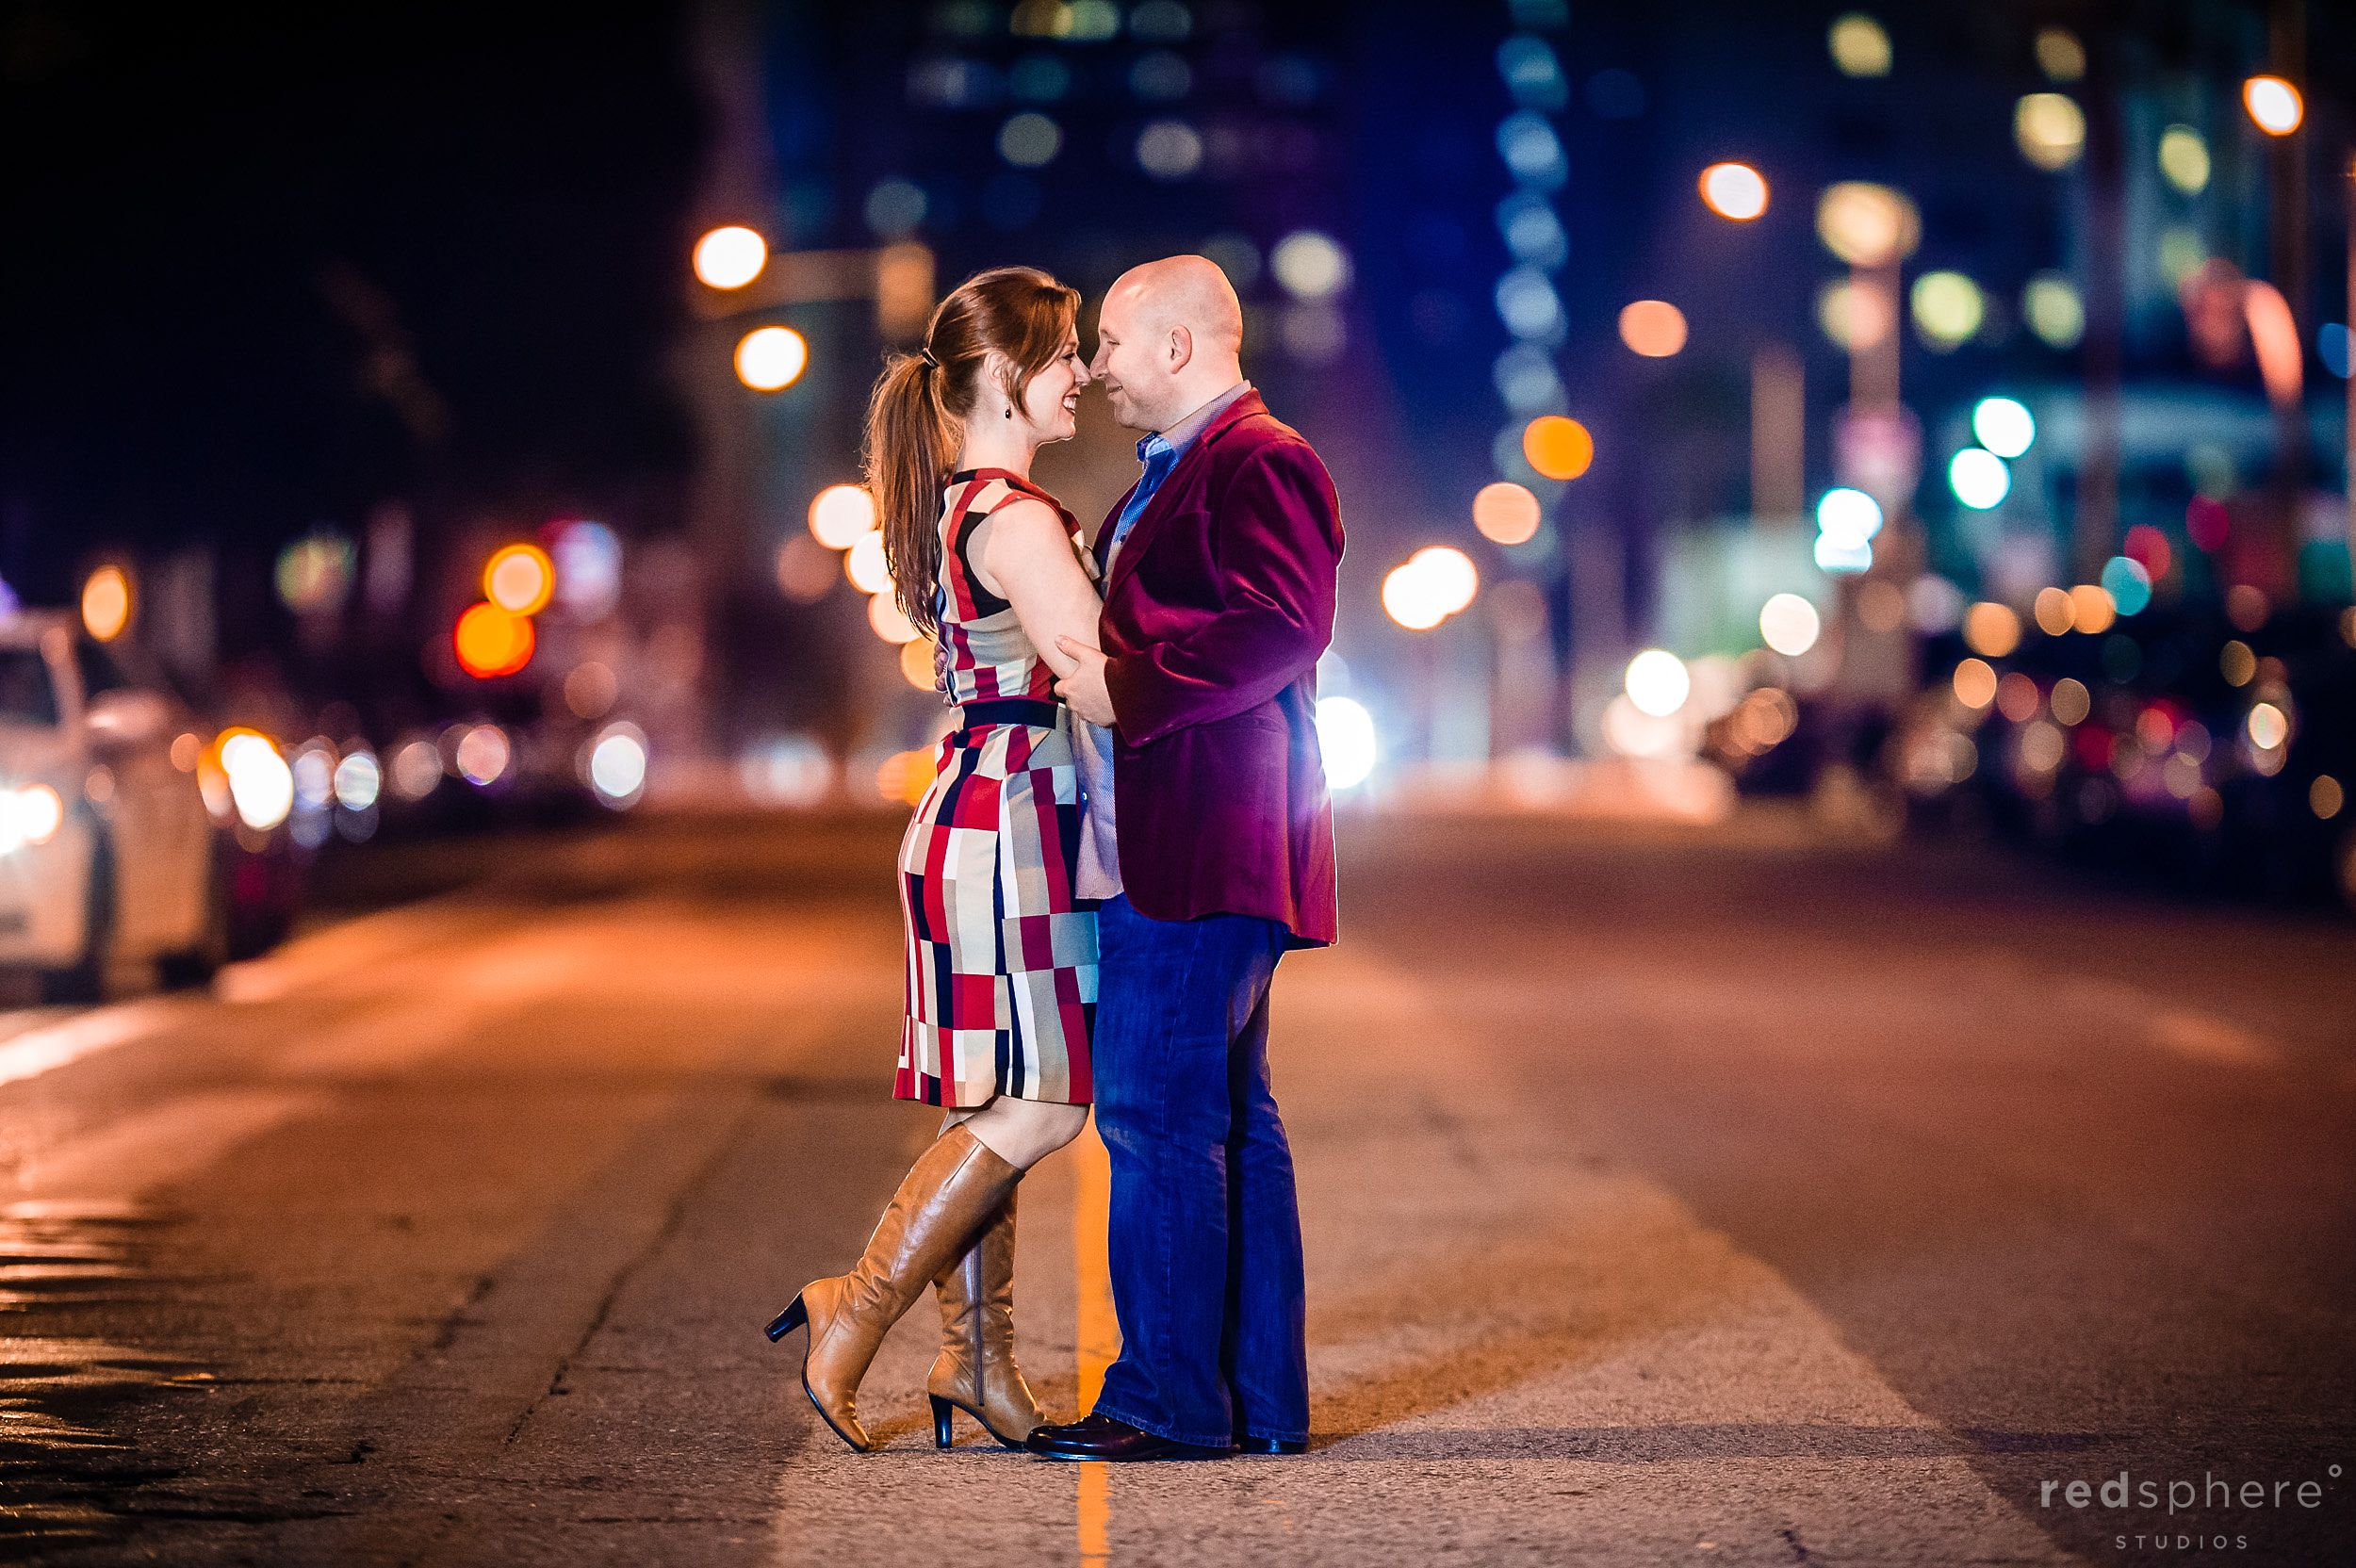 Intimate Couple Moment on Streets of Downtown San Francisco, Bokeh Background